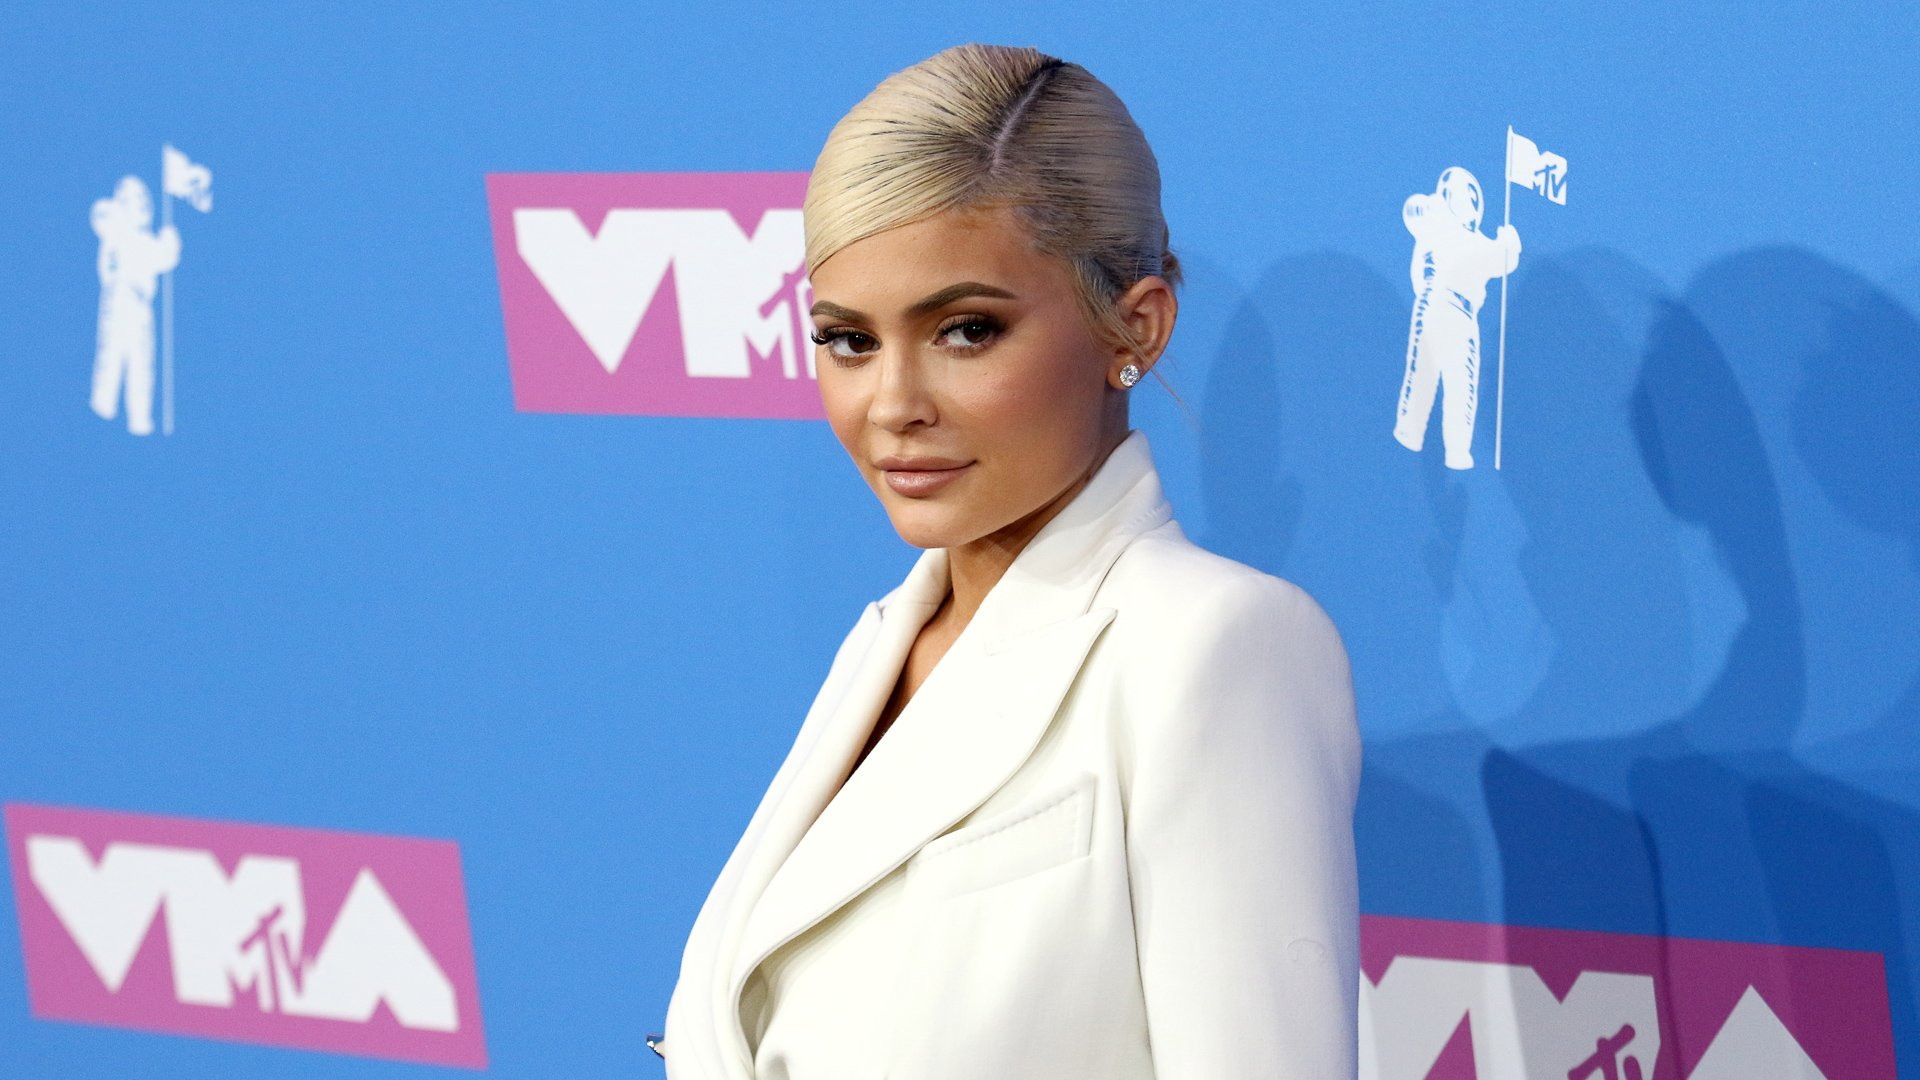 How Rich Is Kylie Jenner After the End of 'Keeping Up With the Kardashians'?